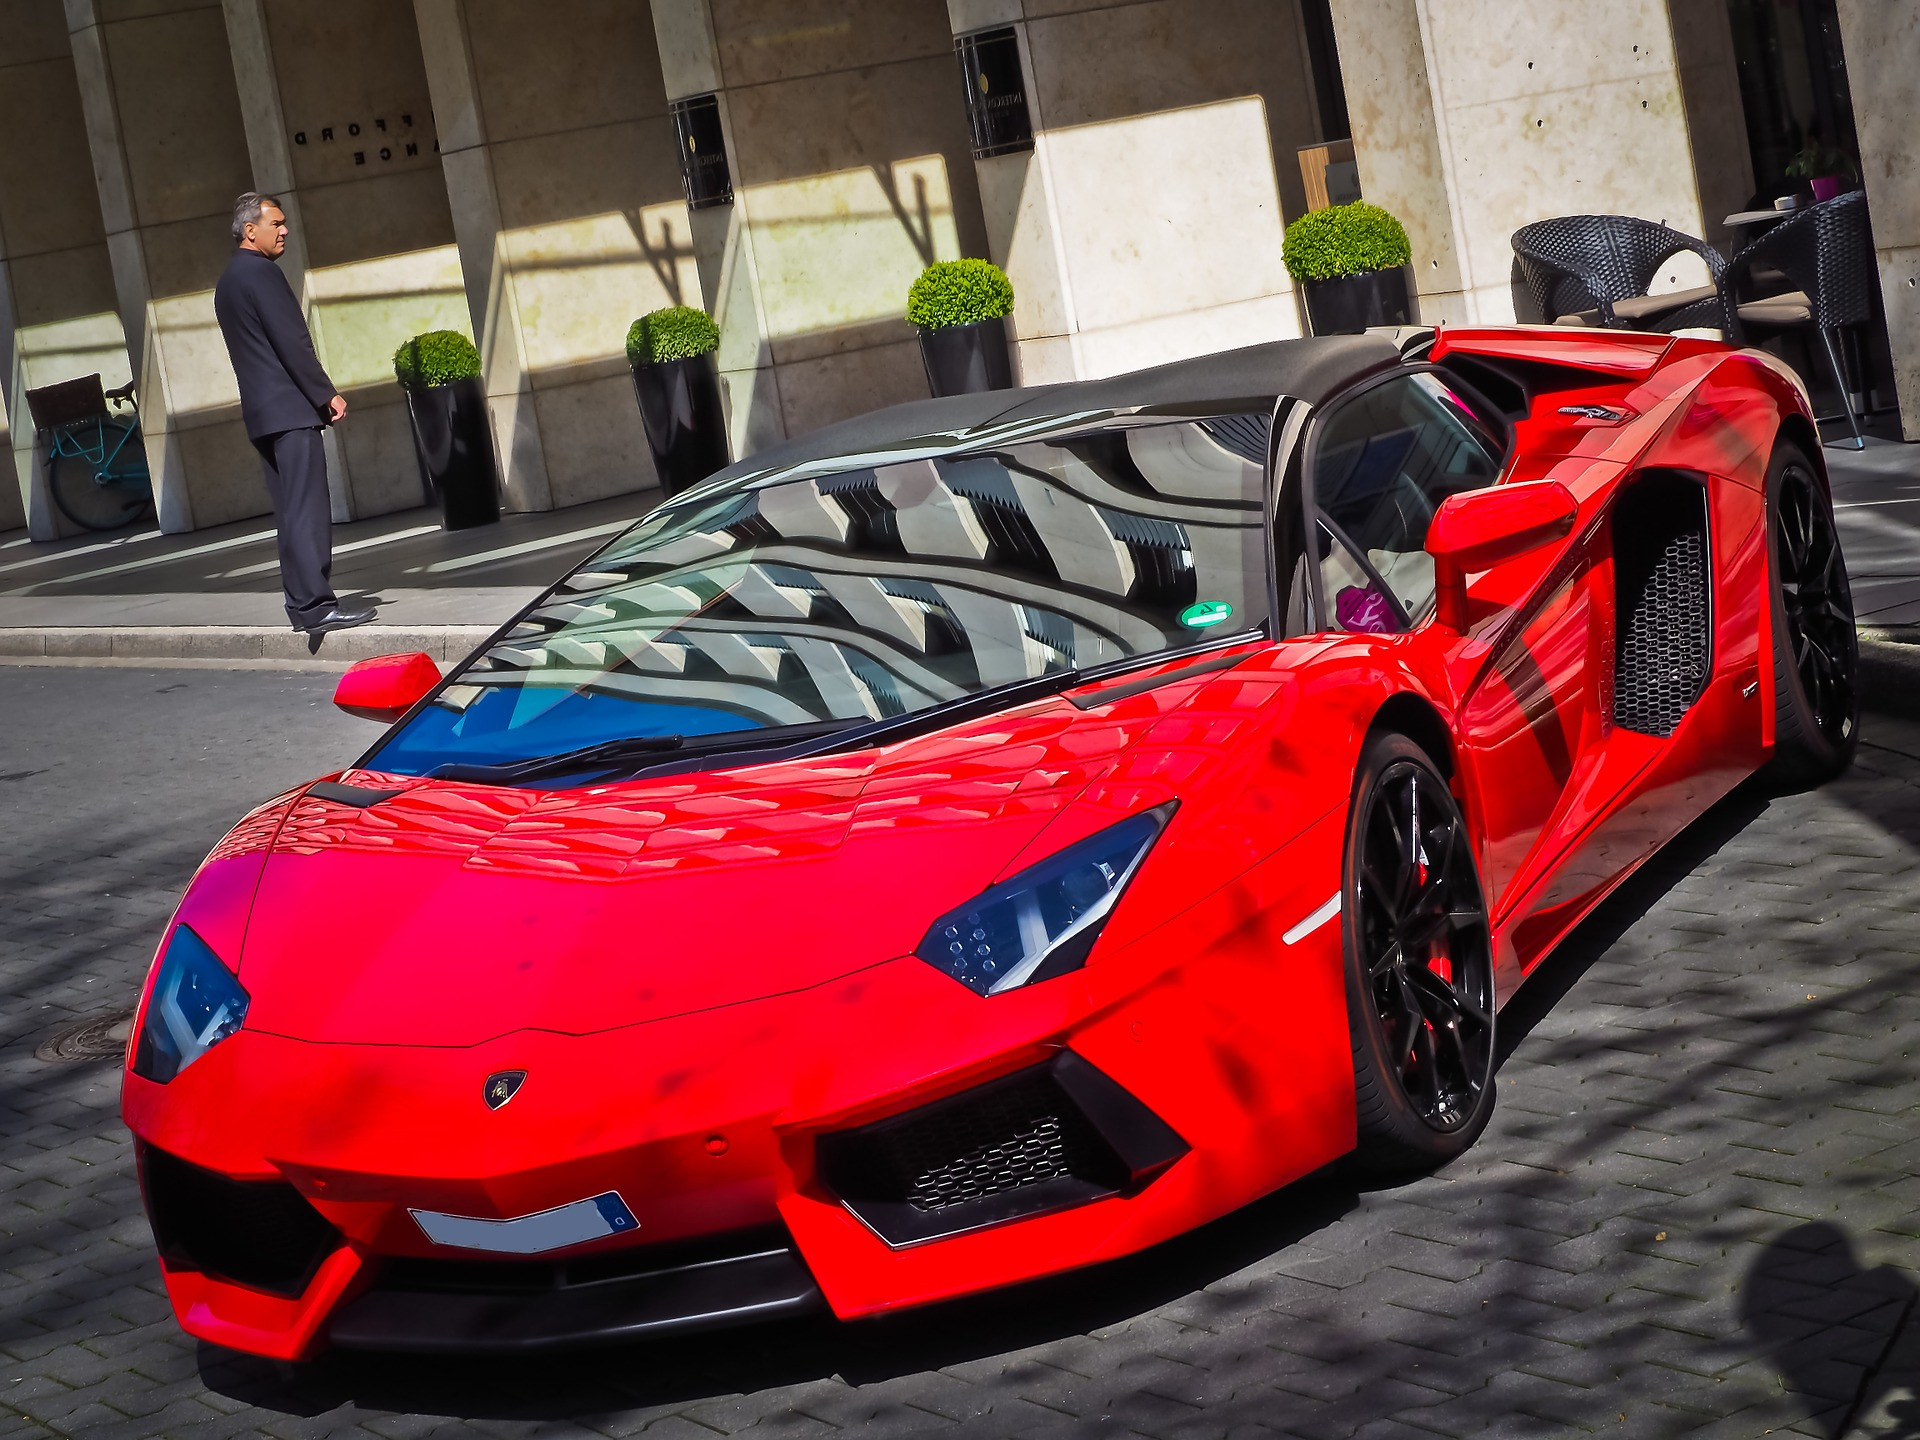 lamborghini aventador roadster release date with Top 10 Carros Mais Caros Do Mundo 2017 on New Lamborghini Centenario Unveiled At The 2016 Geneva Motor Show in addition Pink Cars Wallpaper further 2017 Ferrari Laferrari Aperta further Pink Car Wallpaper besides 2017 Lamborghini Aventador Aggressive Facelift Spied.